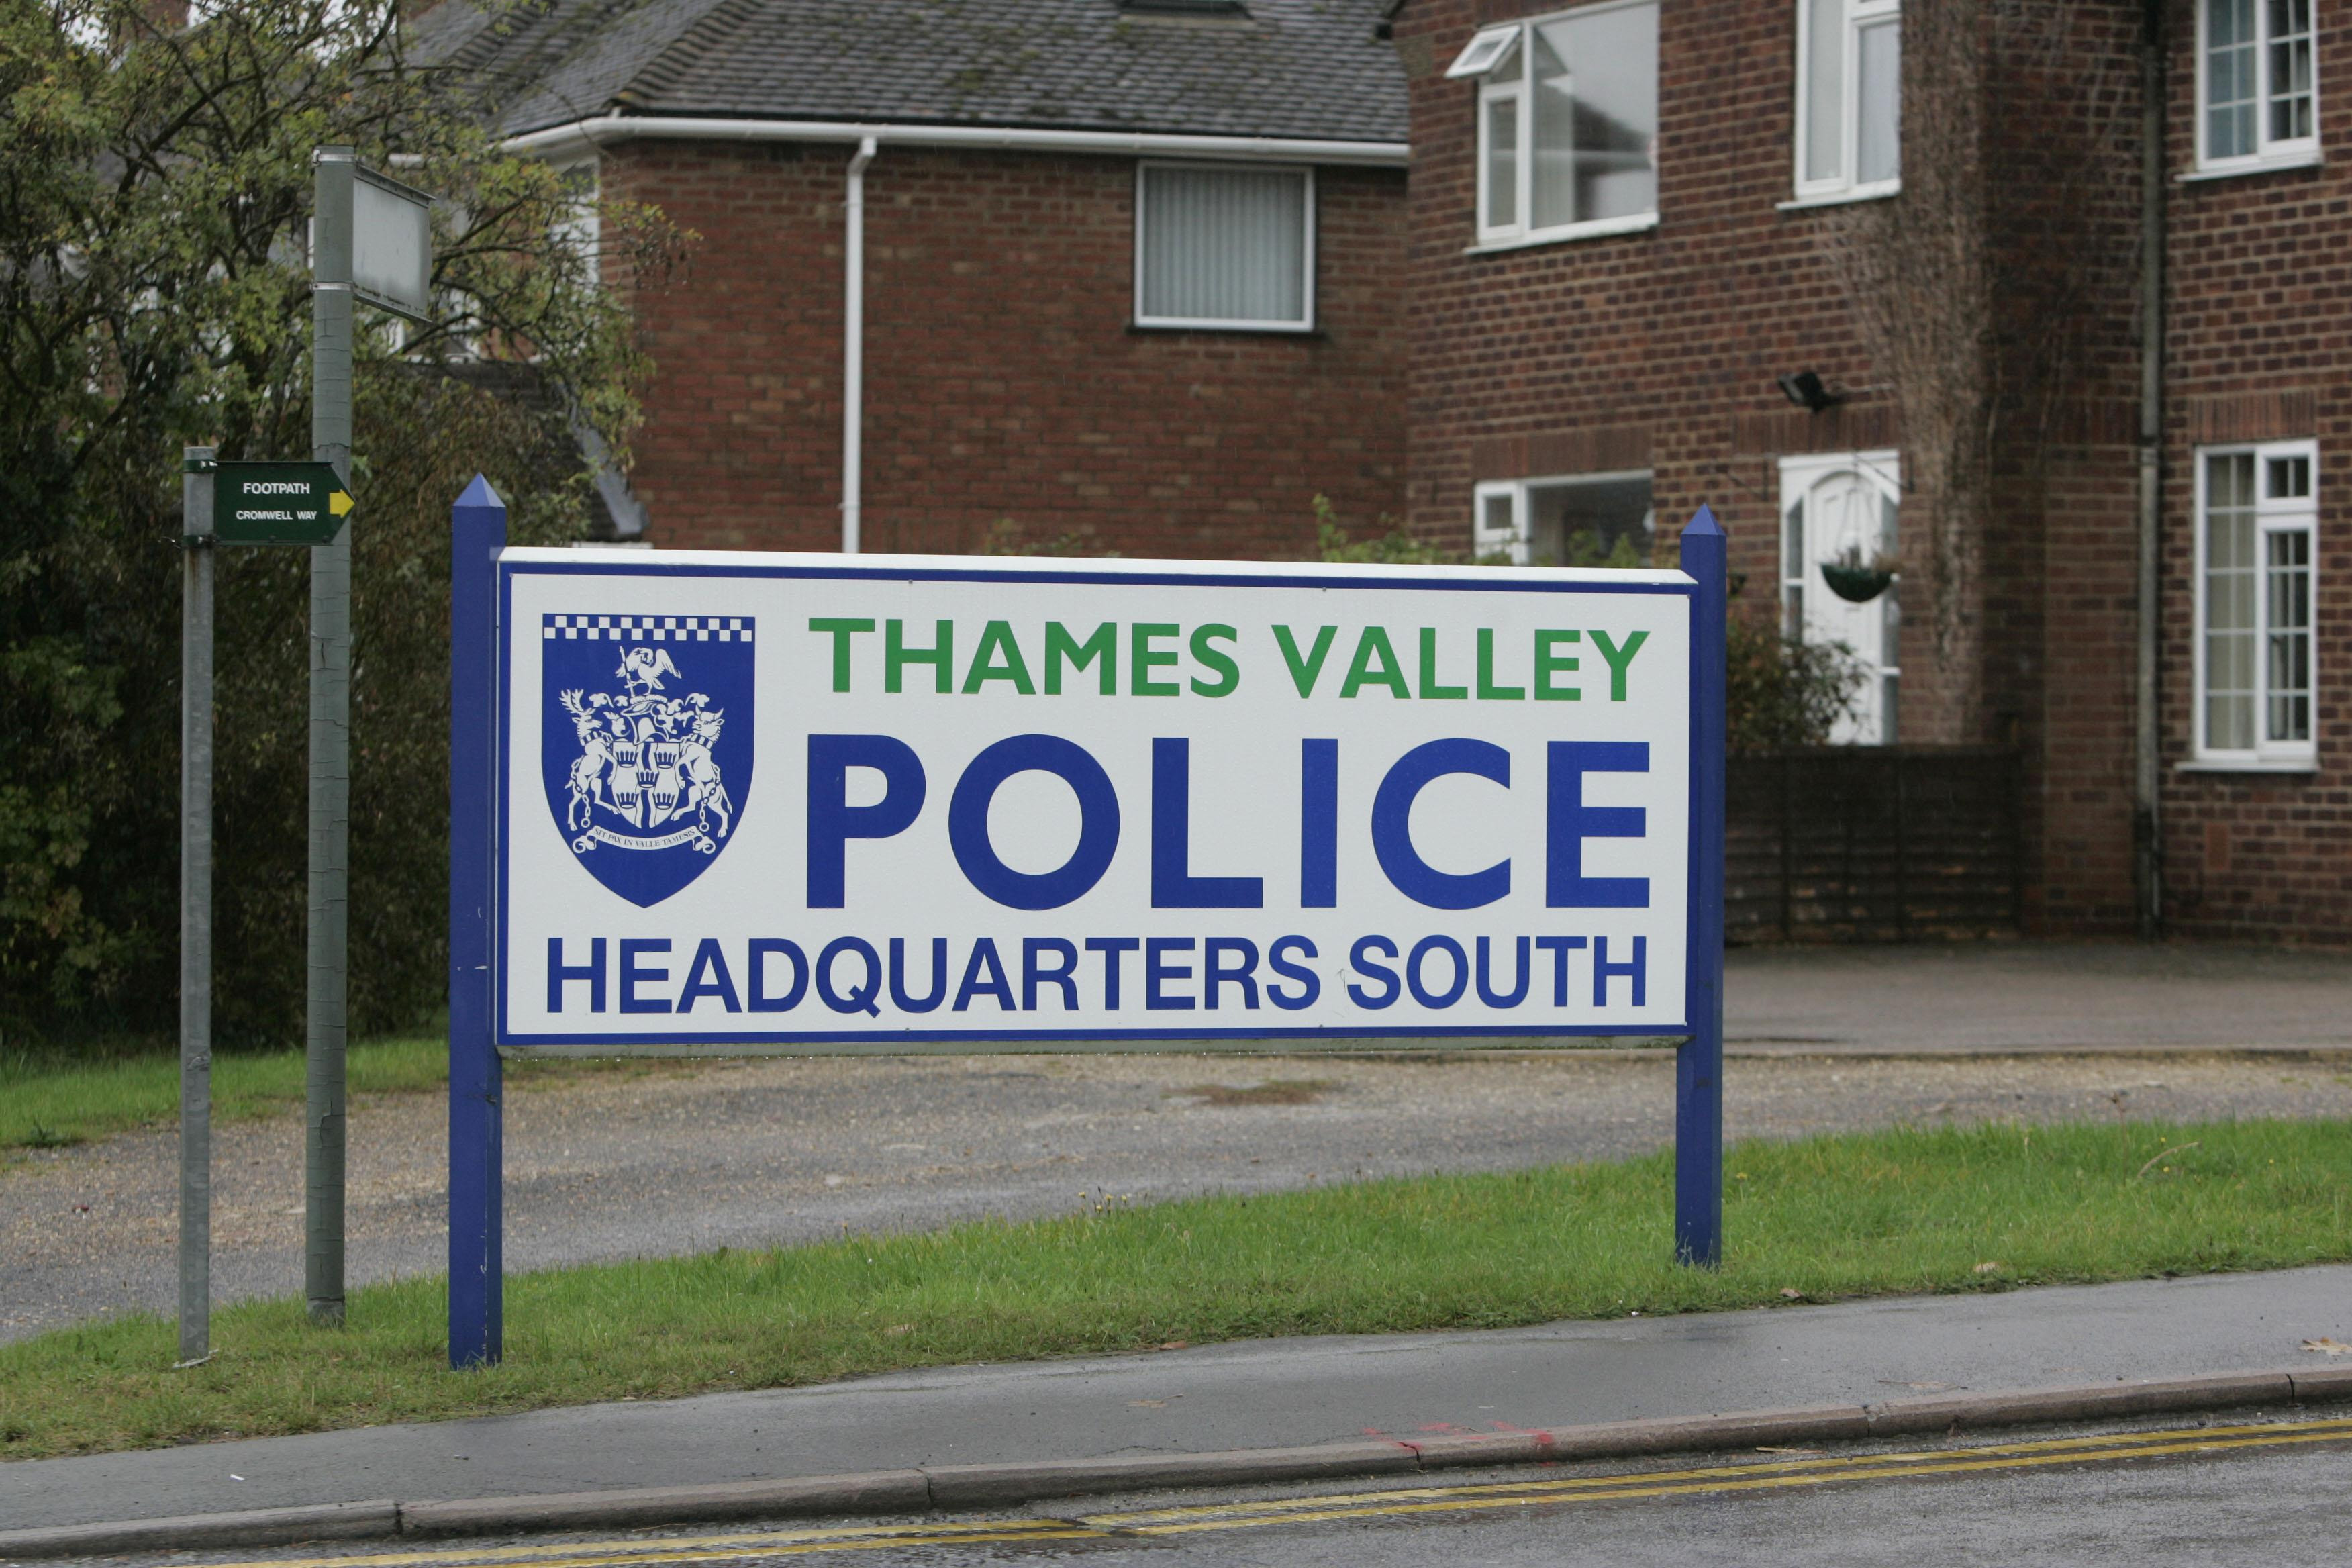 General view of the sign outside Thames Valley Police Head Quarters.   (Photo by Tim Ockenden - PA Images/PA Images via Getty Images)